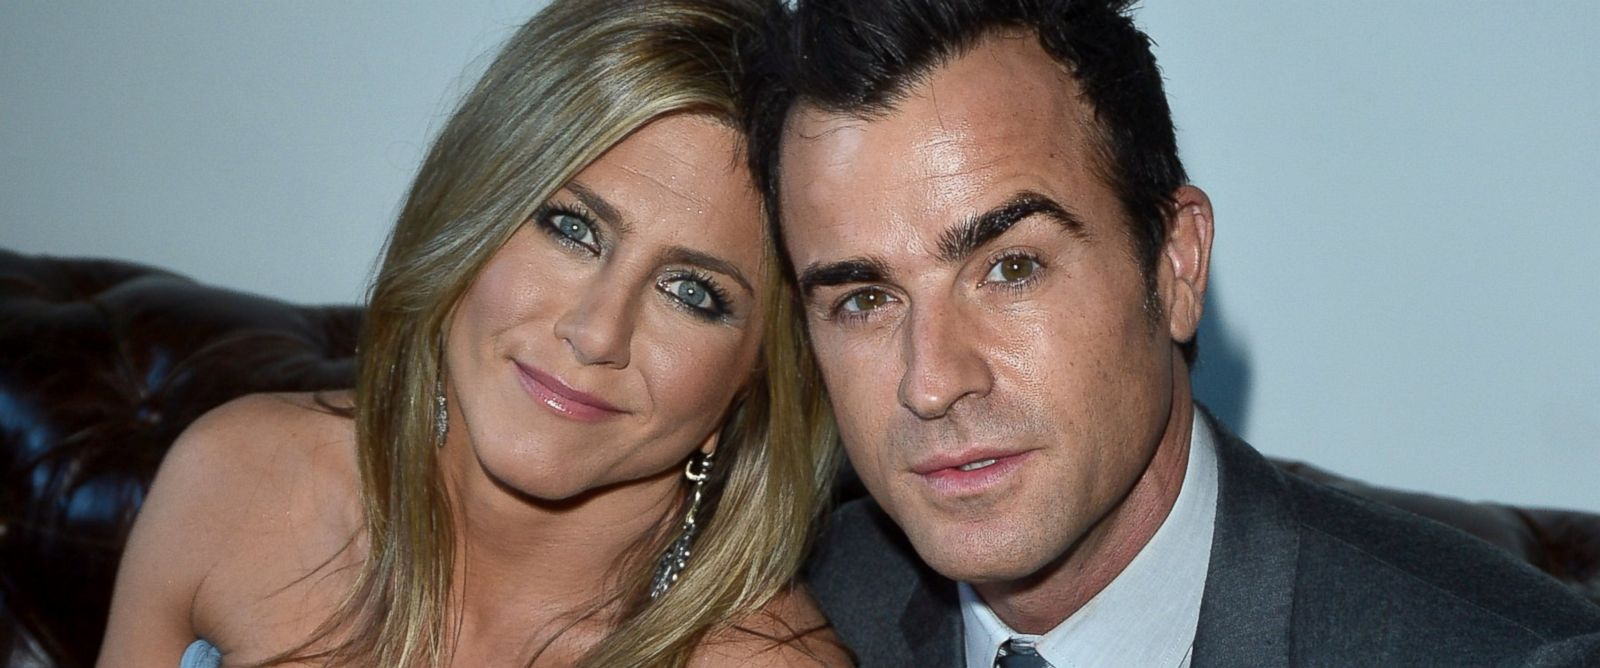 PHOTO: Jennifer Aniston and Justin Theroux attend the 2013 Toronto International Film Festival, Sept. 14, 2013 in Toronto, Canada.